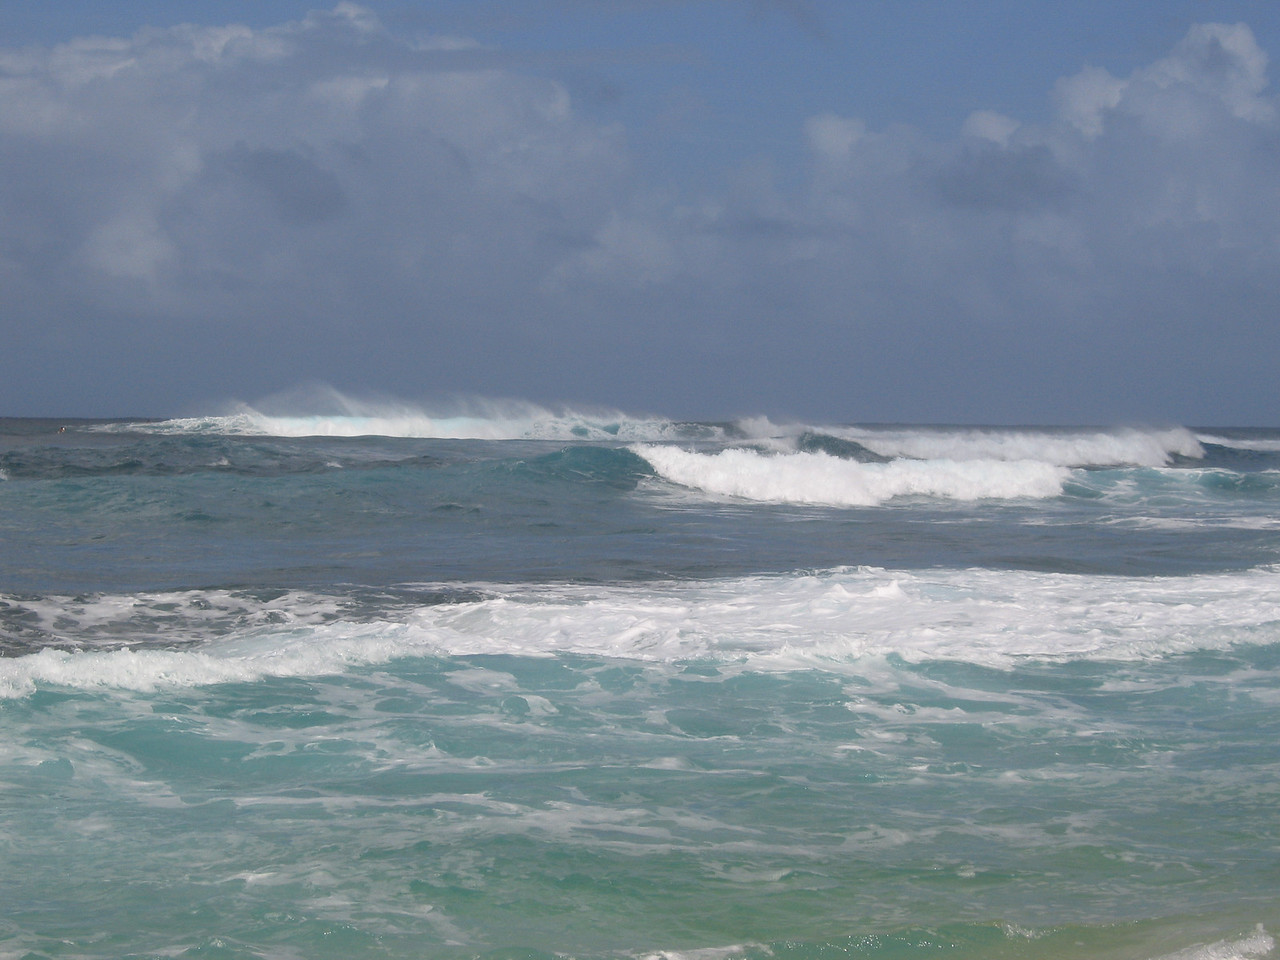 Waves on North Shore